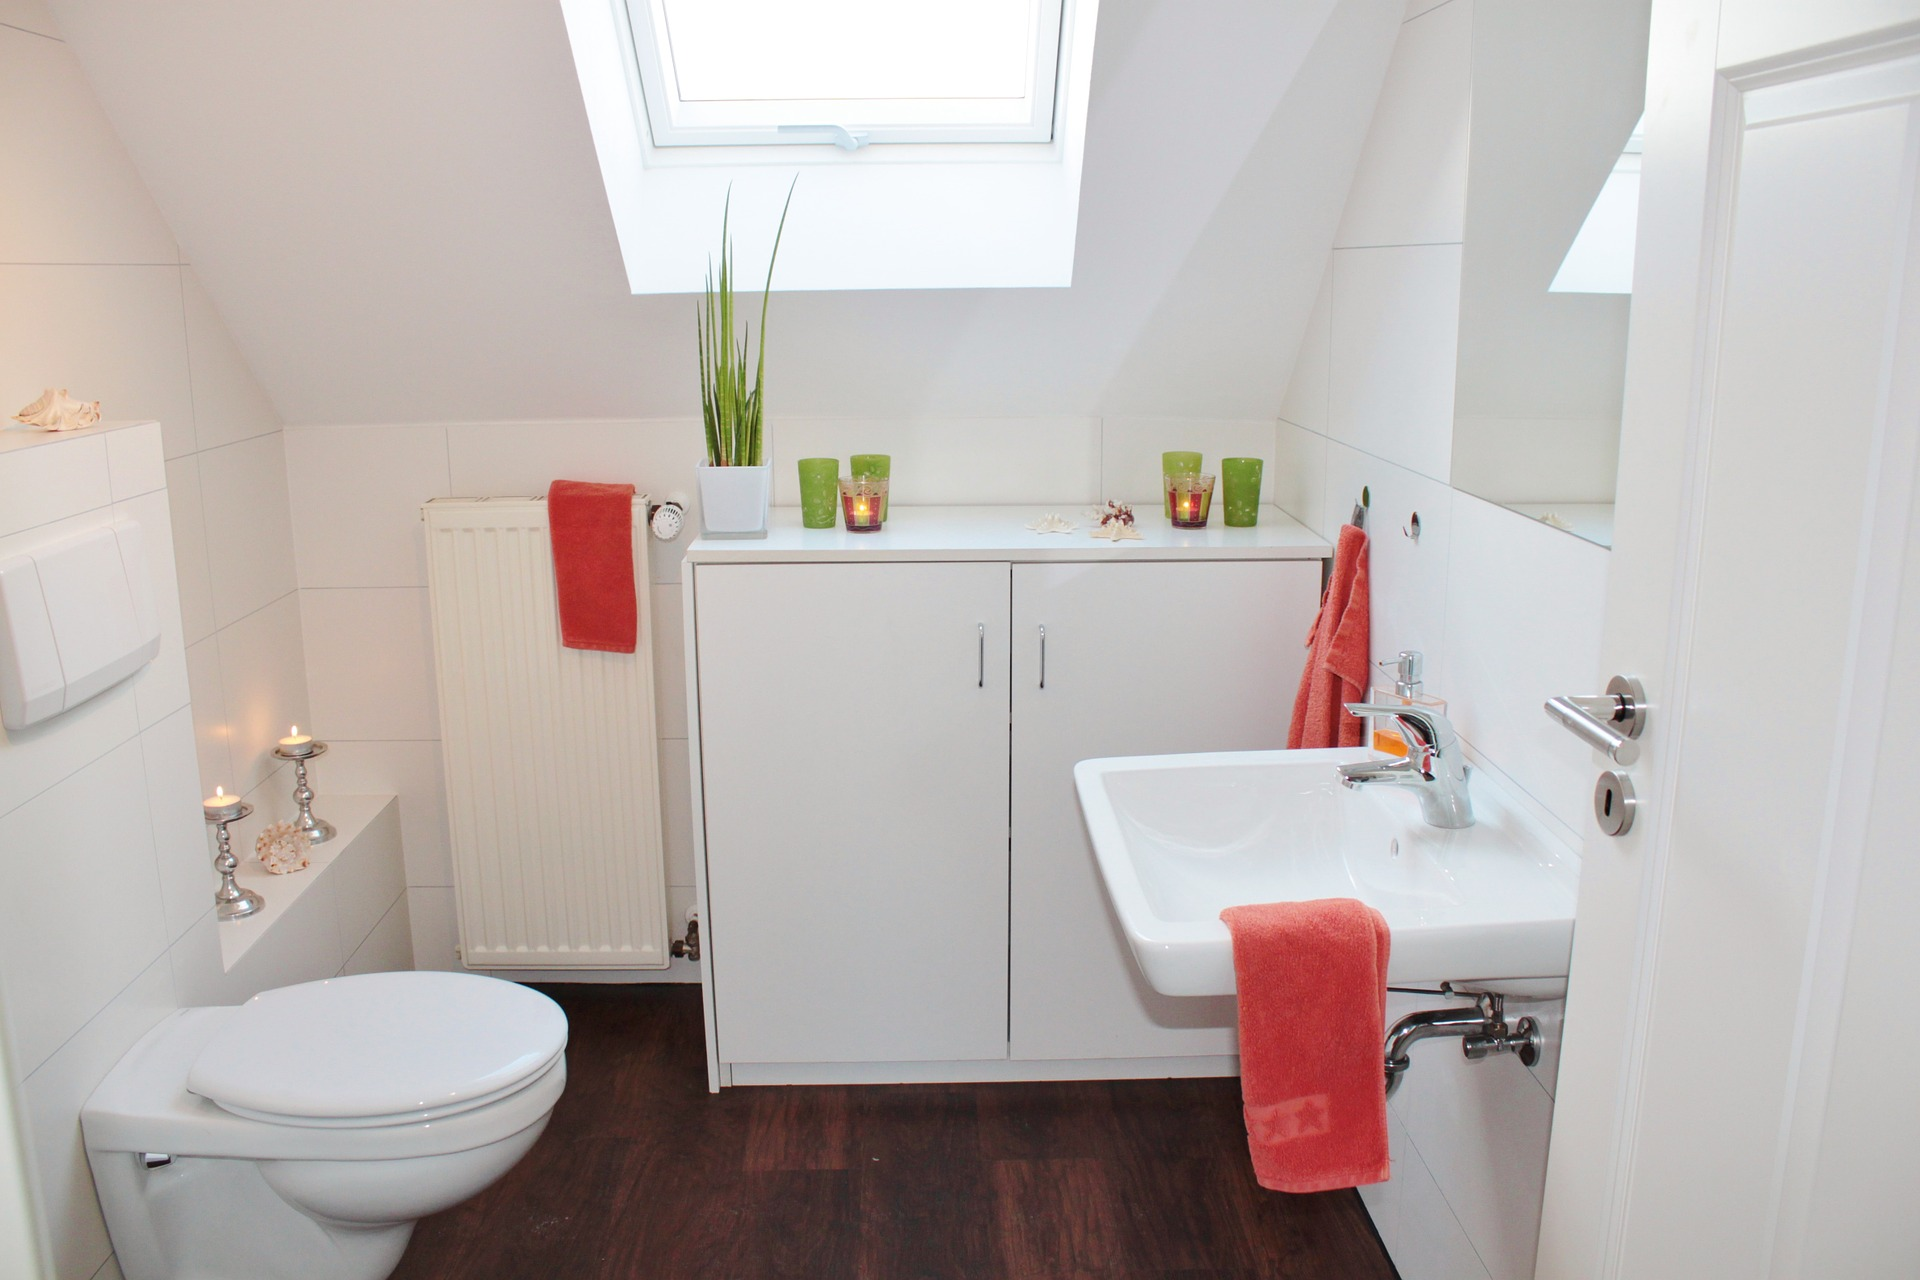 Bathroom Basins Australia – What To Look For When Buying The Basin?